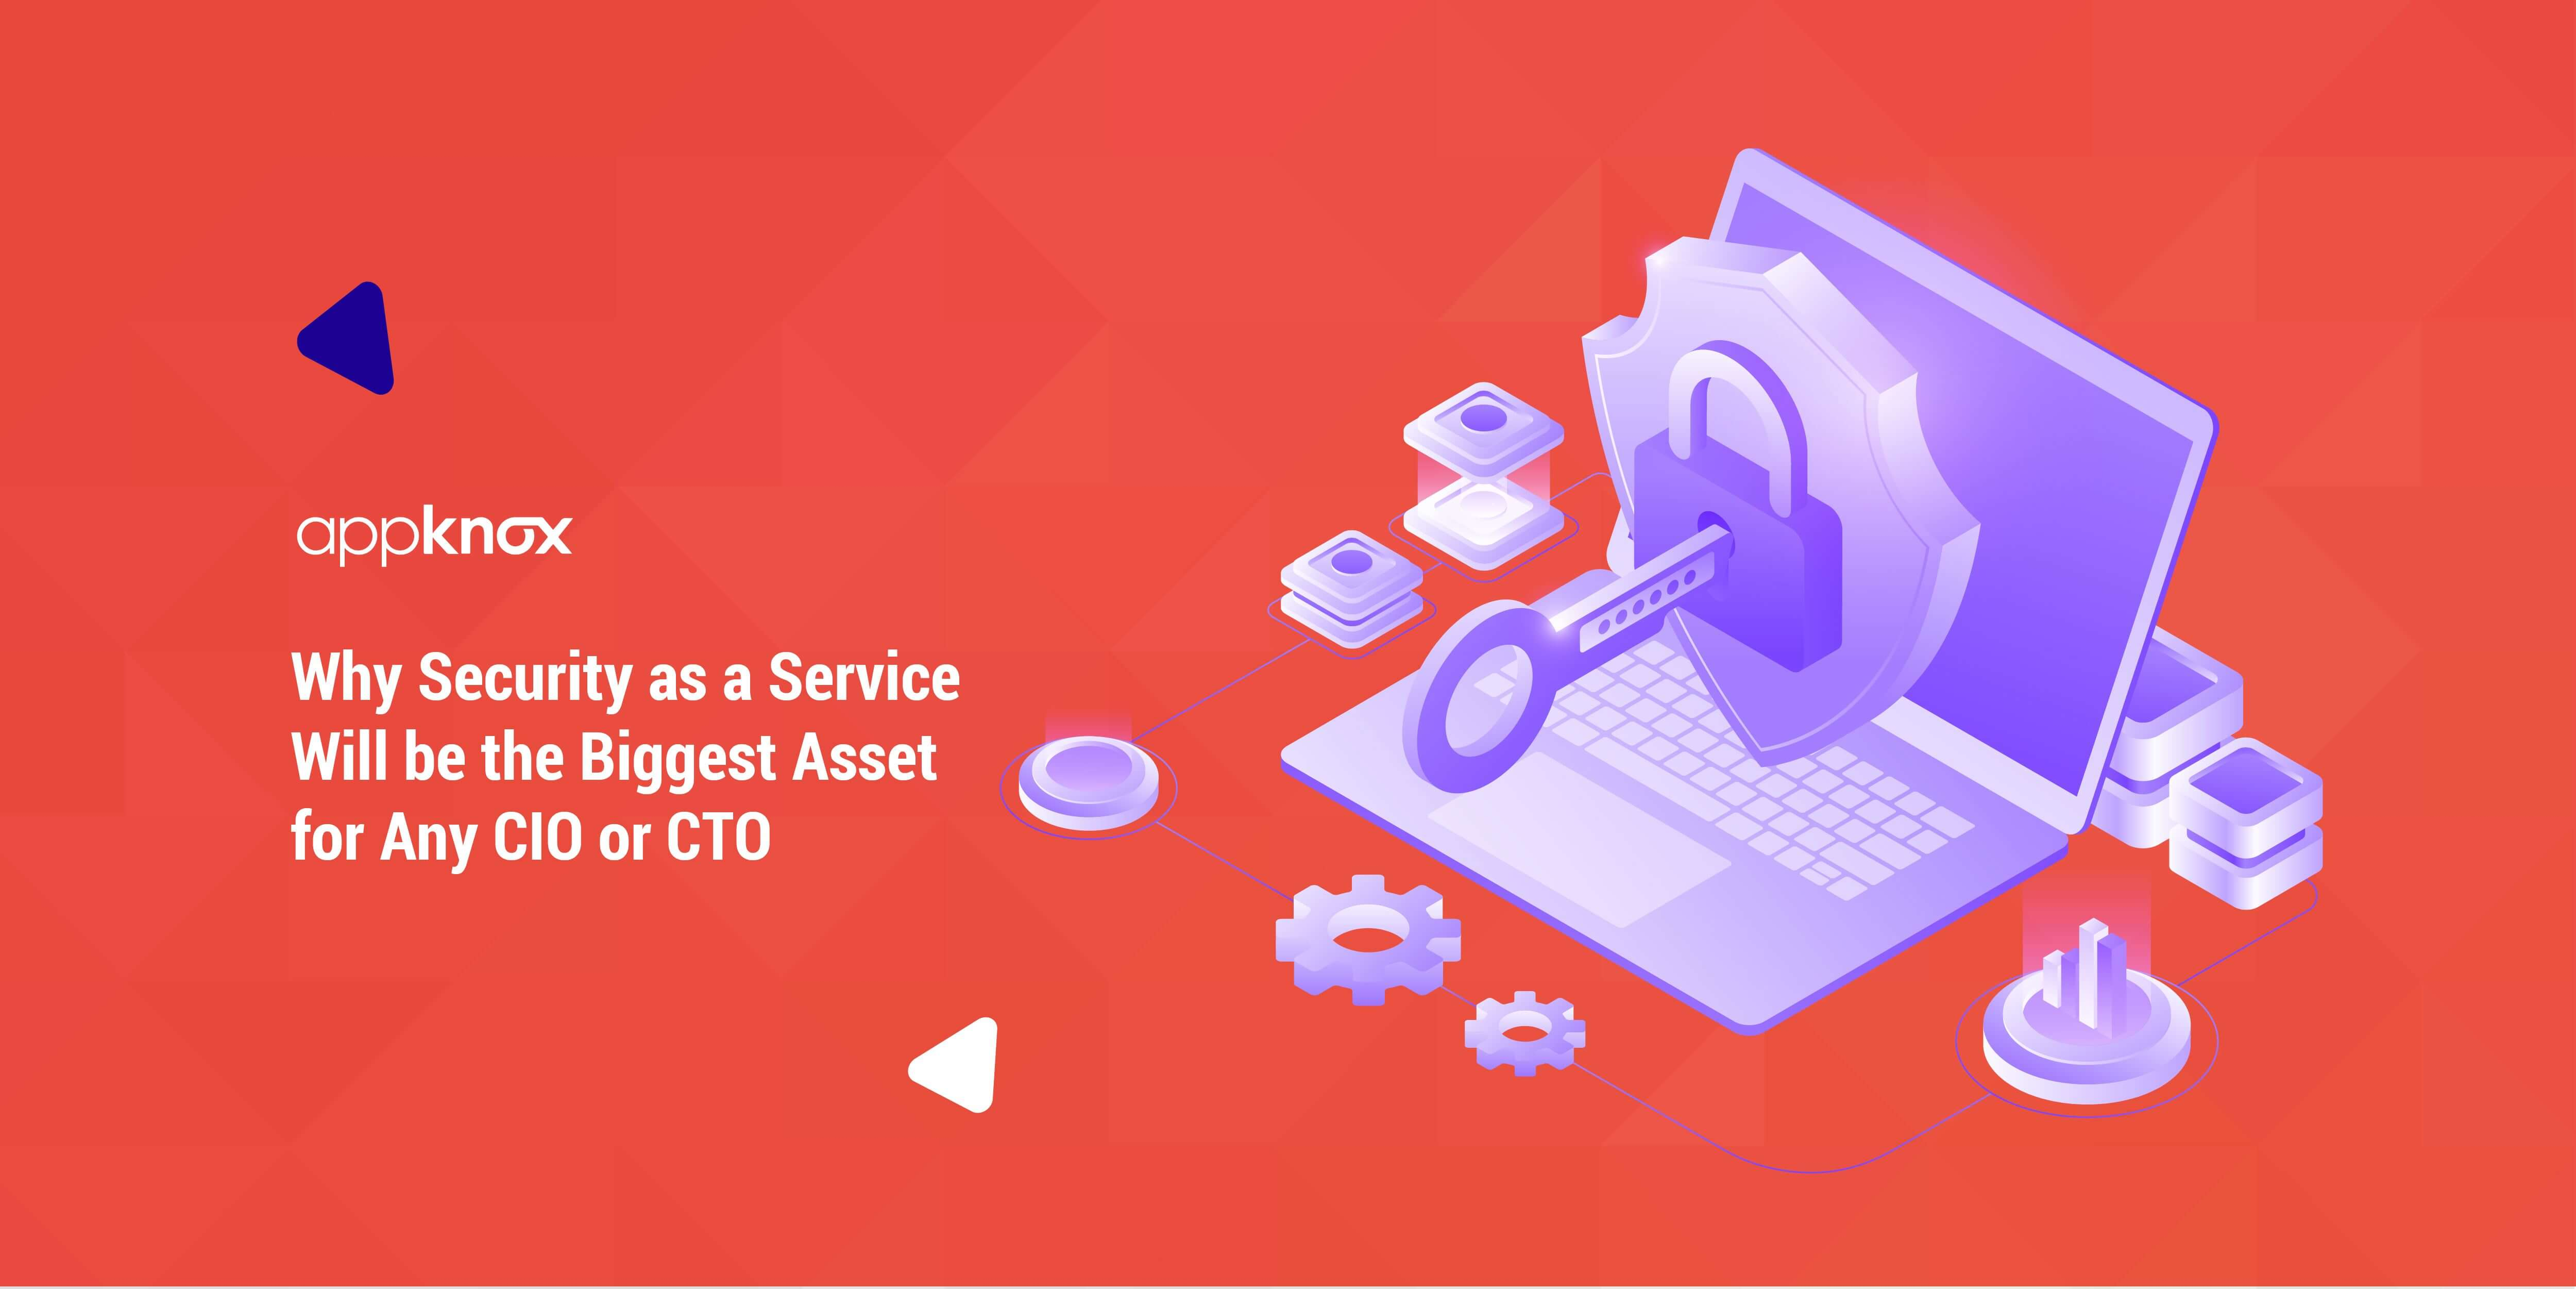 Why Security as a Service Will be the Biggest Asset for Any CIO or CTO